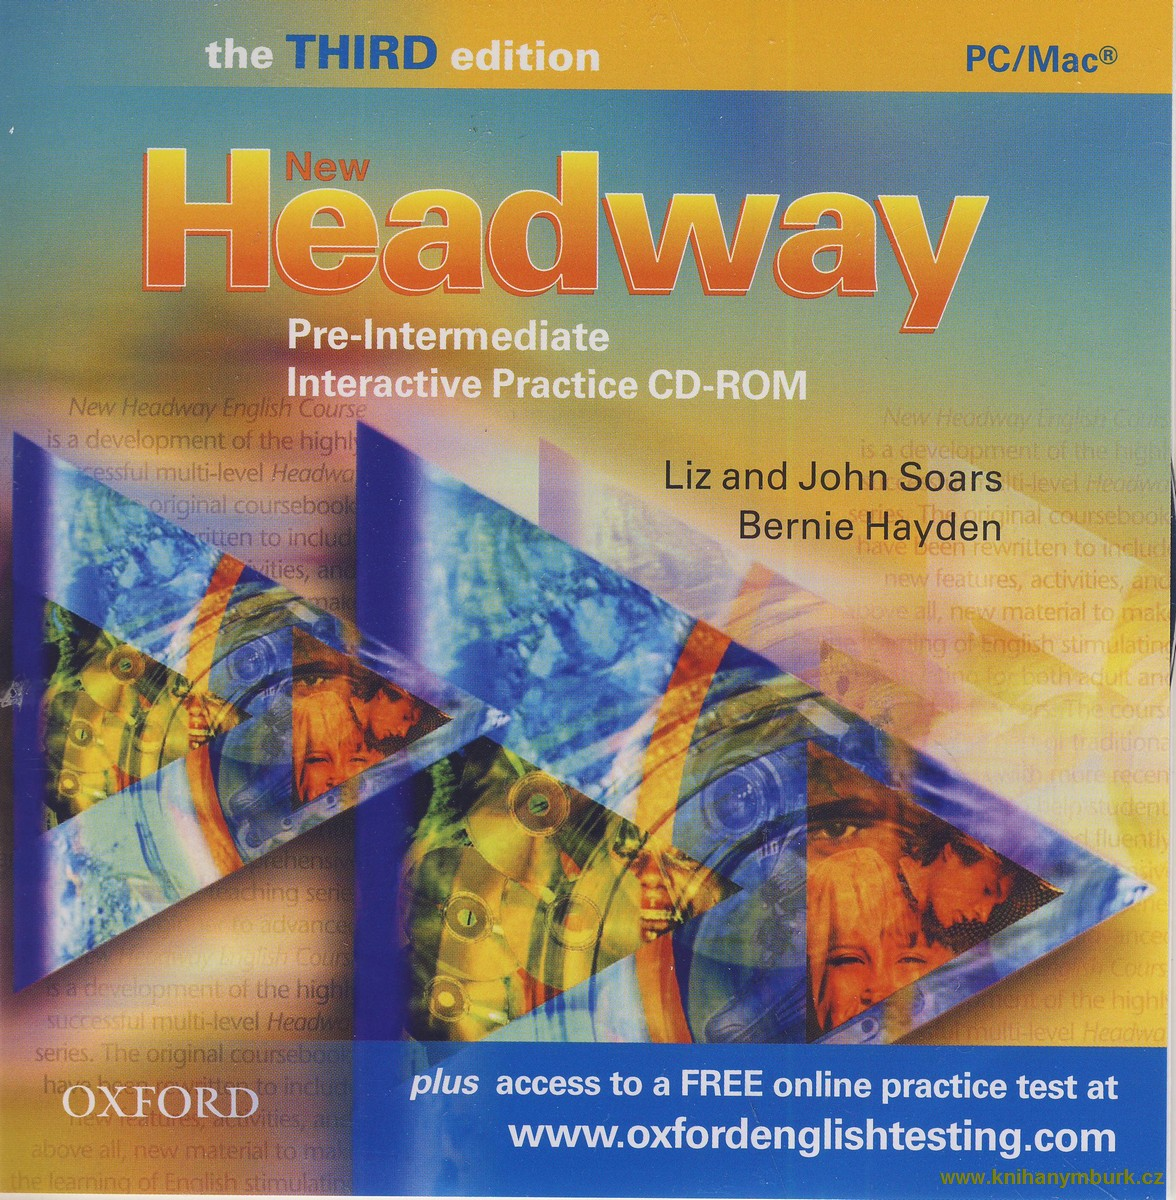 Headway the Third edition pre-intermediate CD-ROM